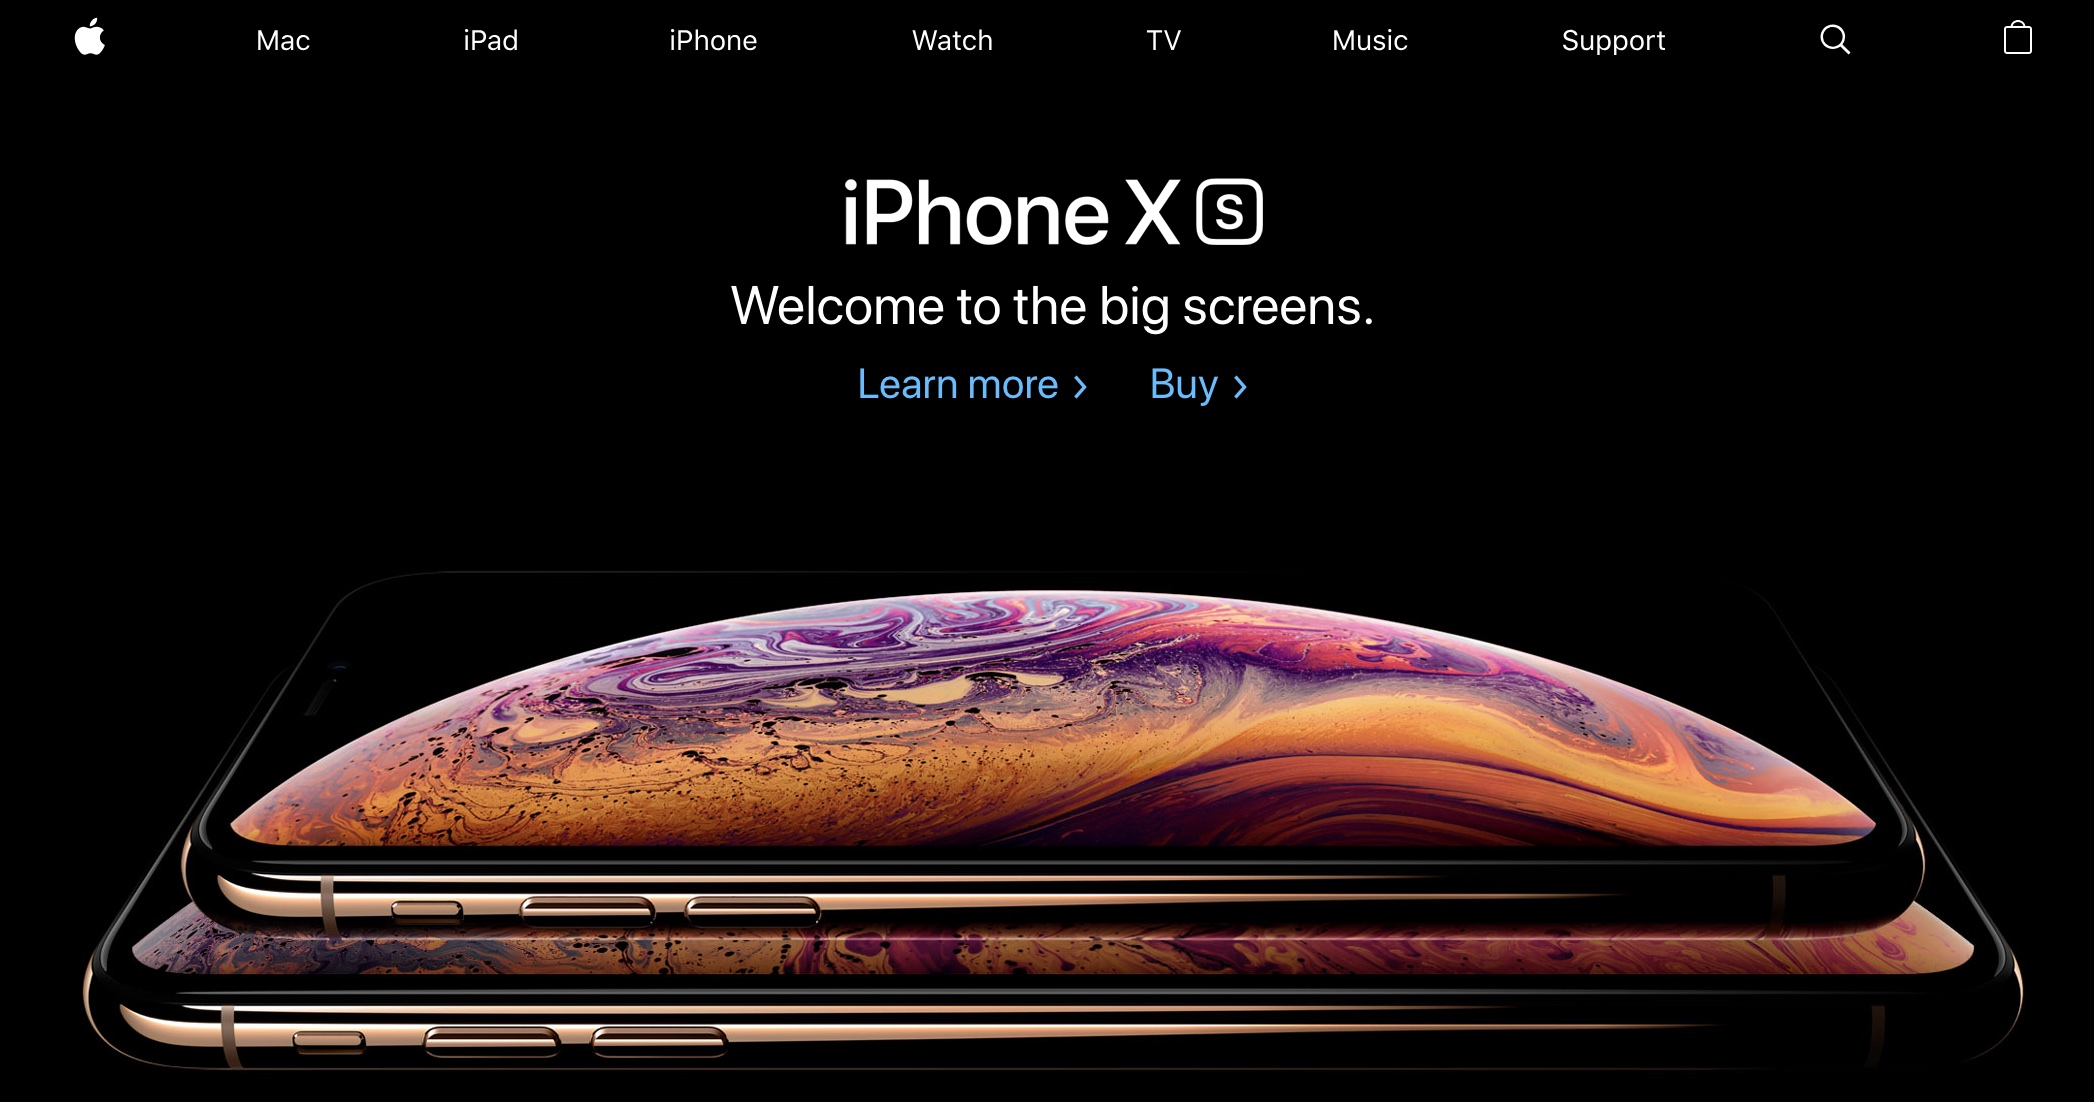 Apple homepage showing iPhone Xs (2018)